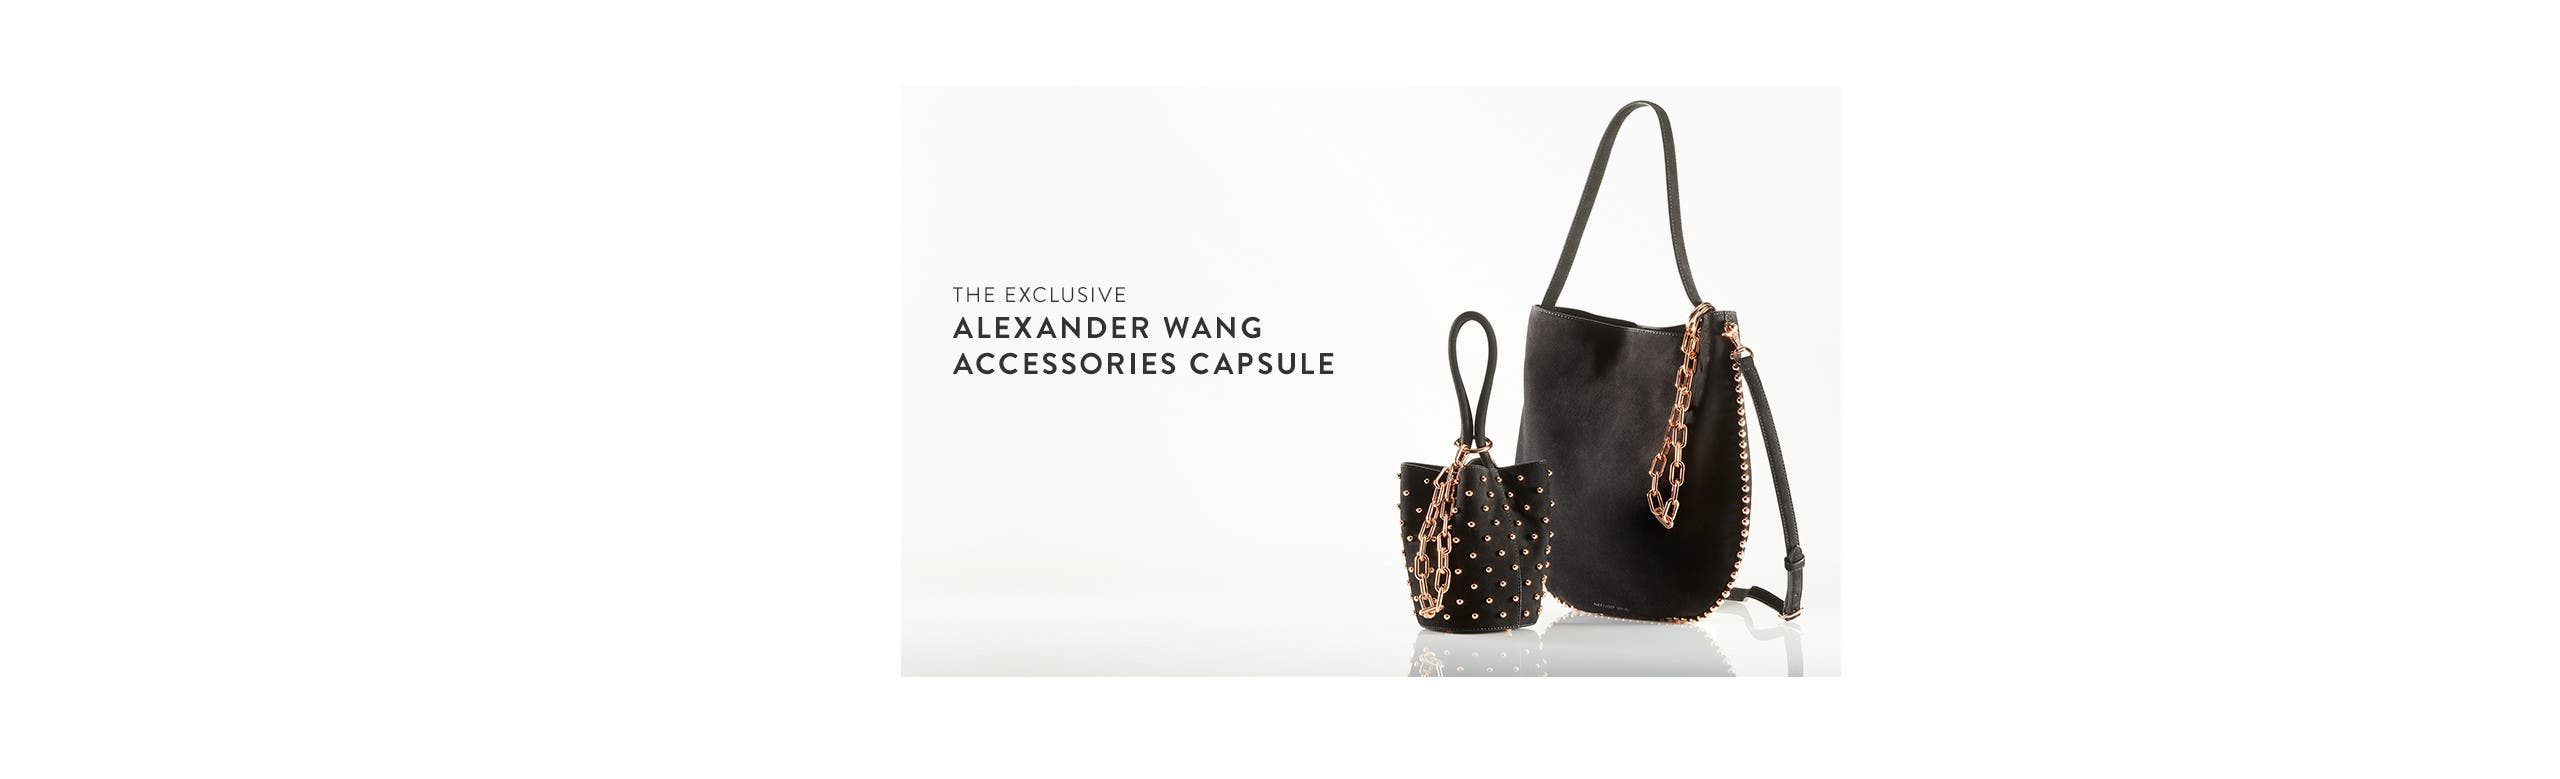 The Nordstrom-exclusive Alexander Wang rose gold capsule.